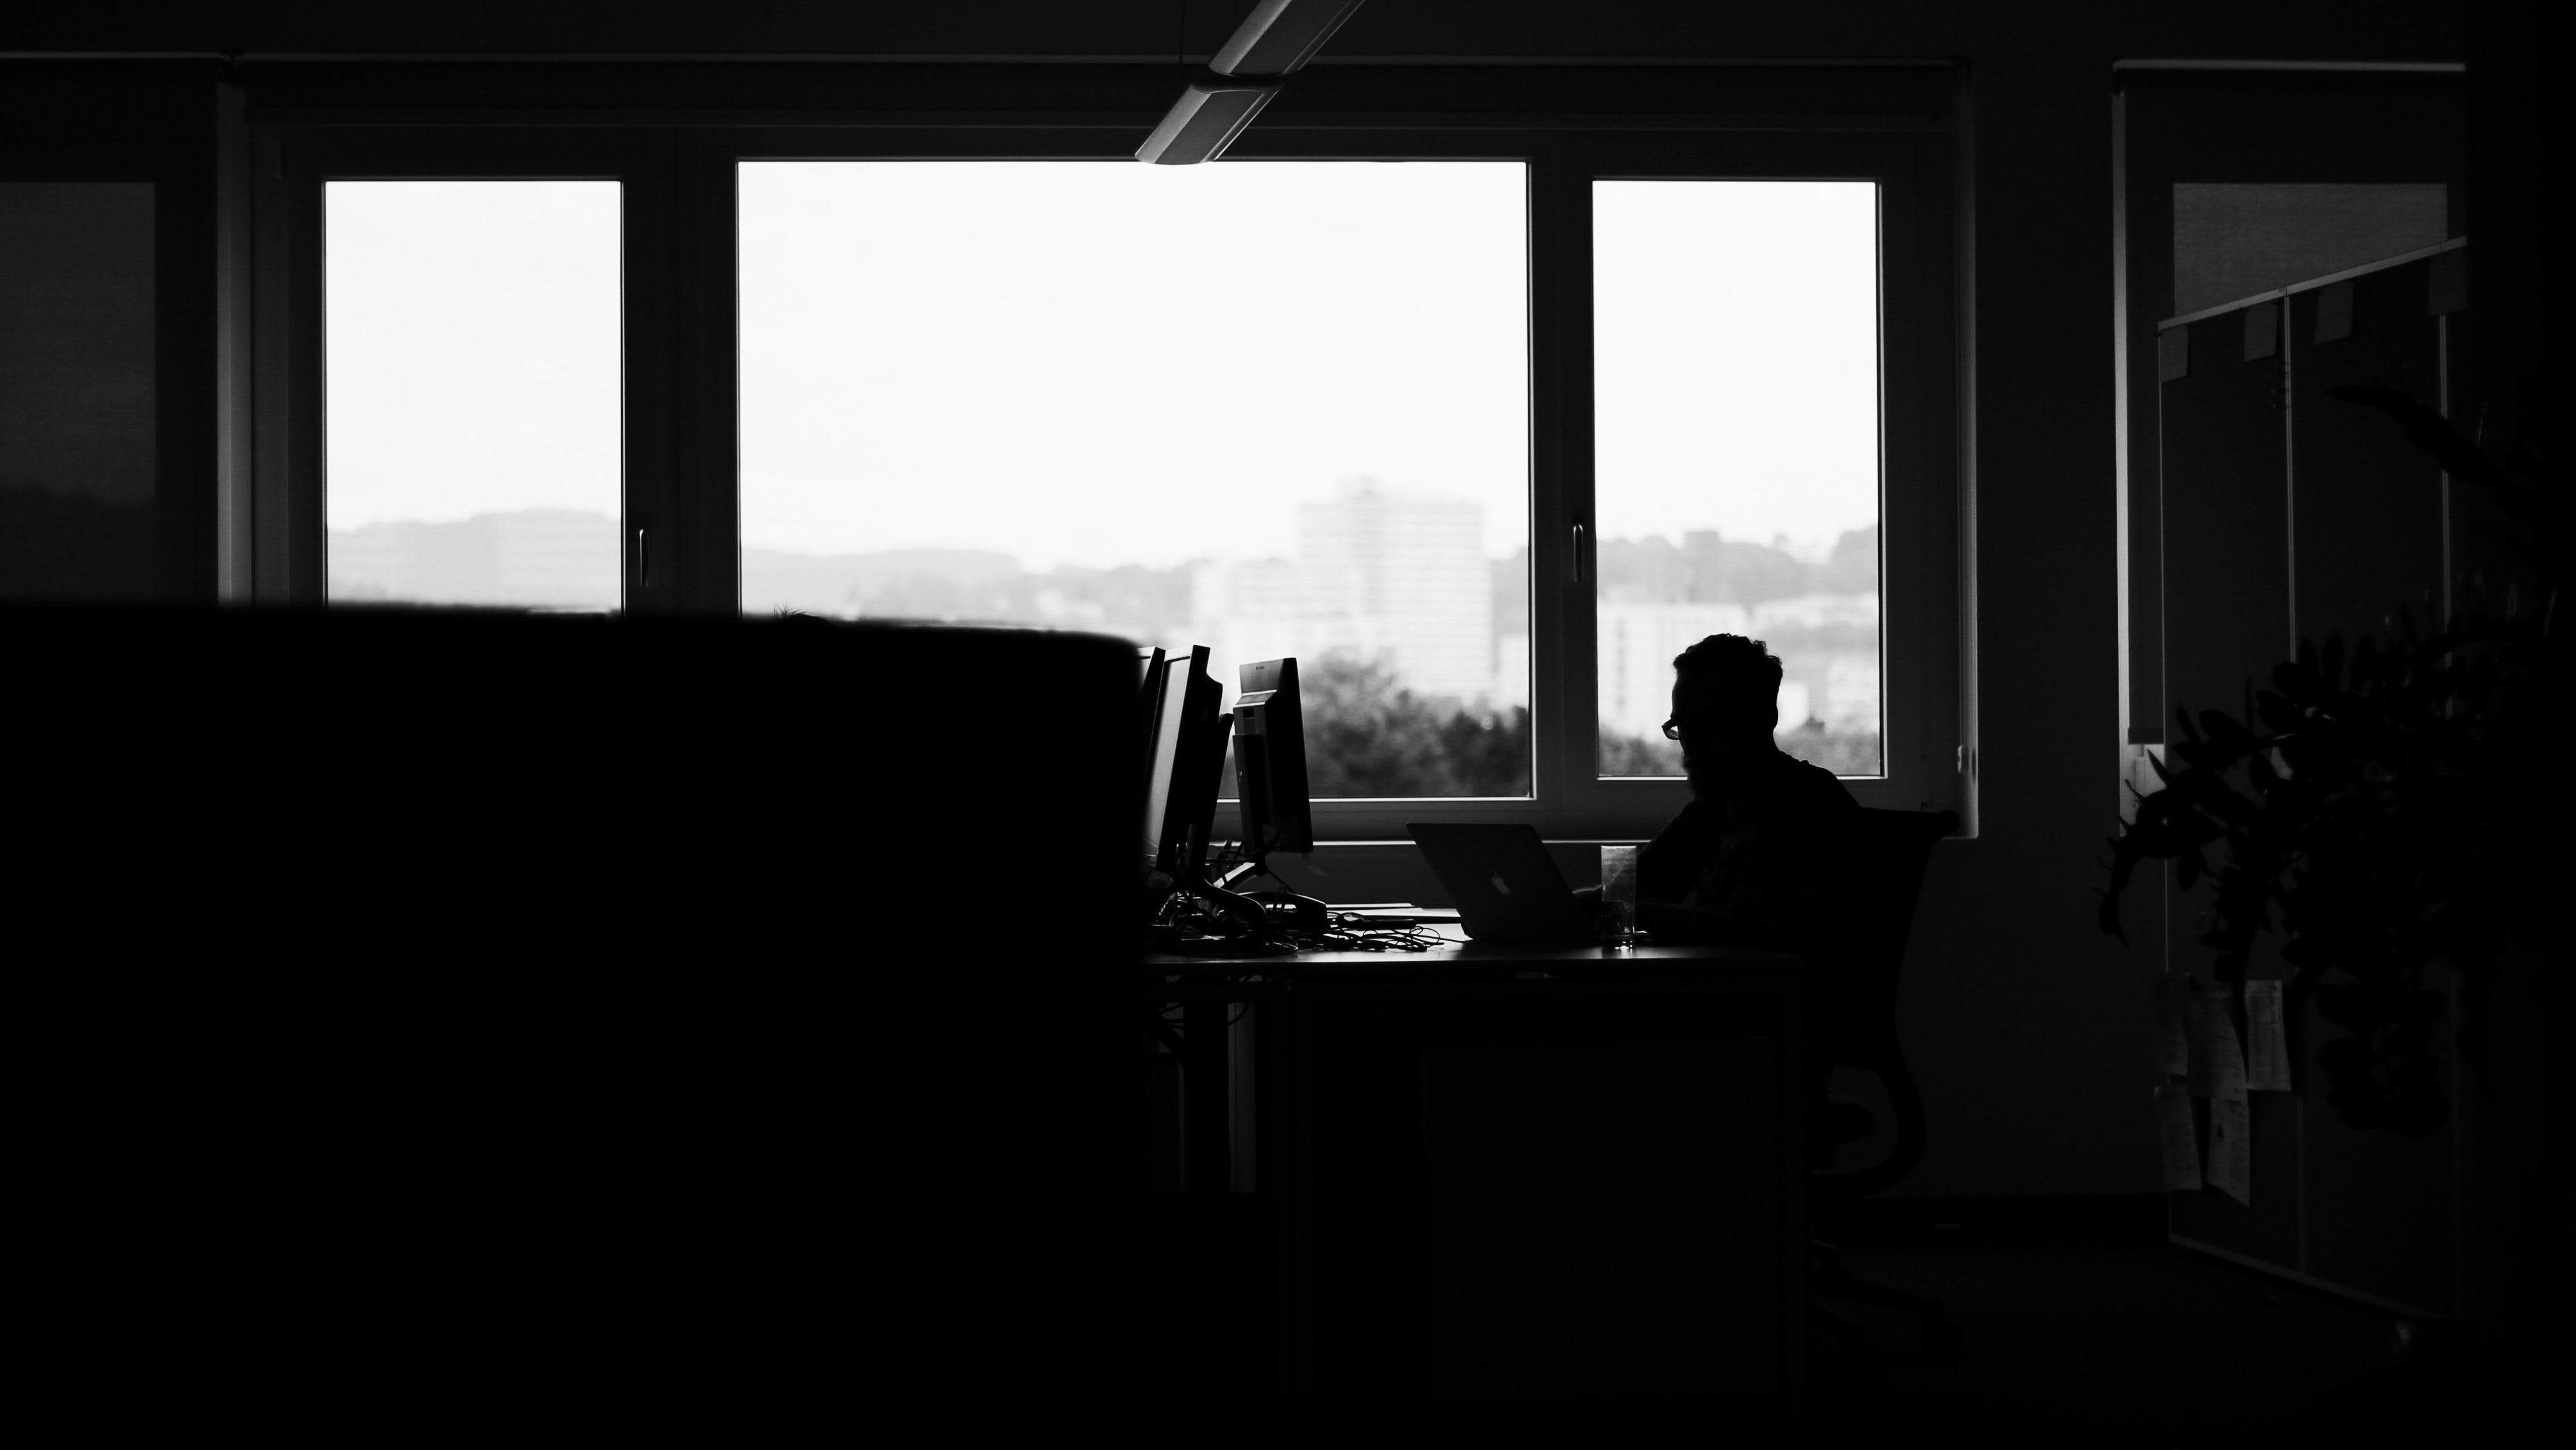 A dim shot of a man sitting at a desk with a laptop near a window